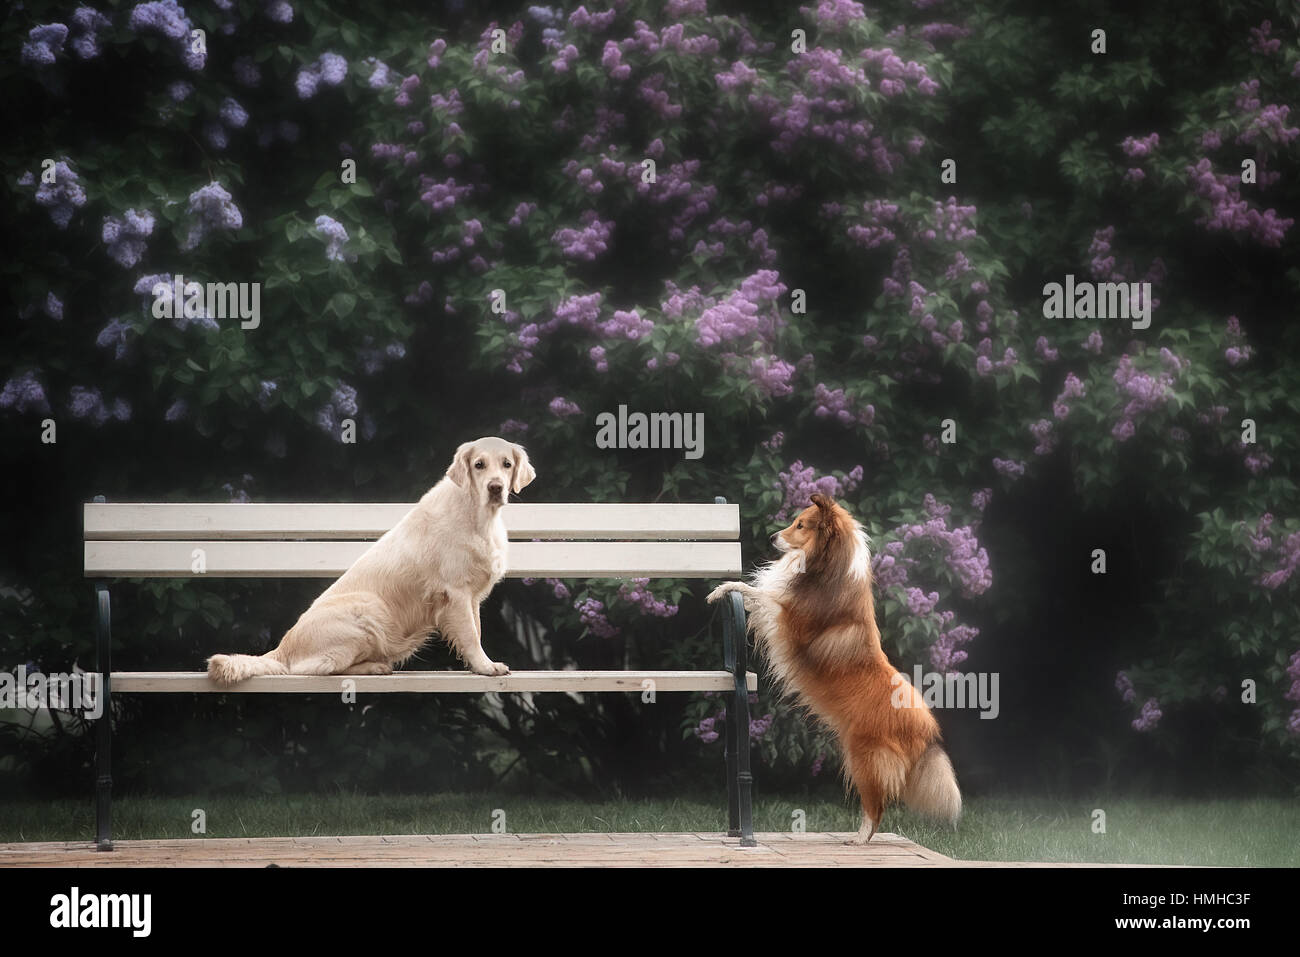 the love story of two dogs - Stock Image